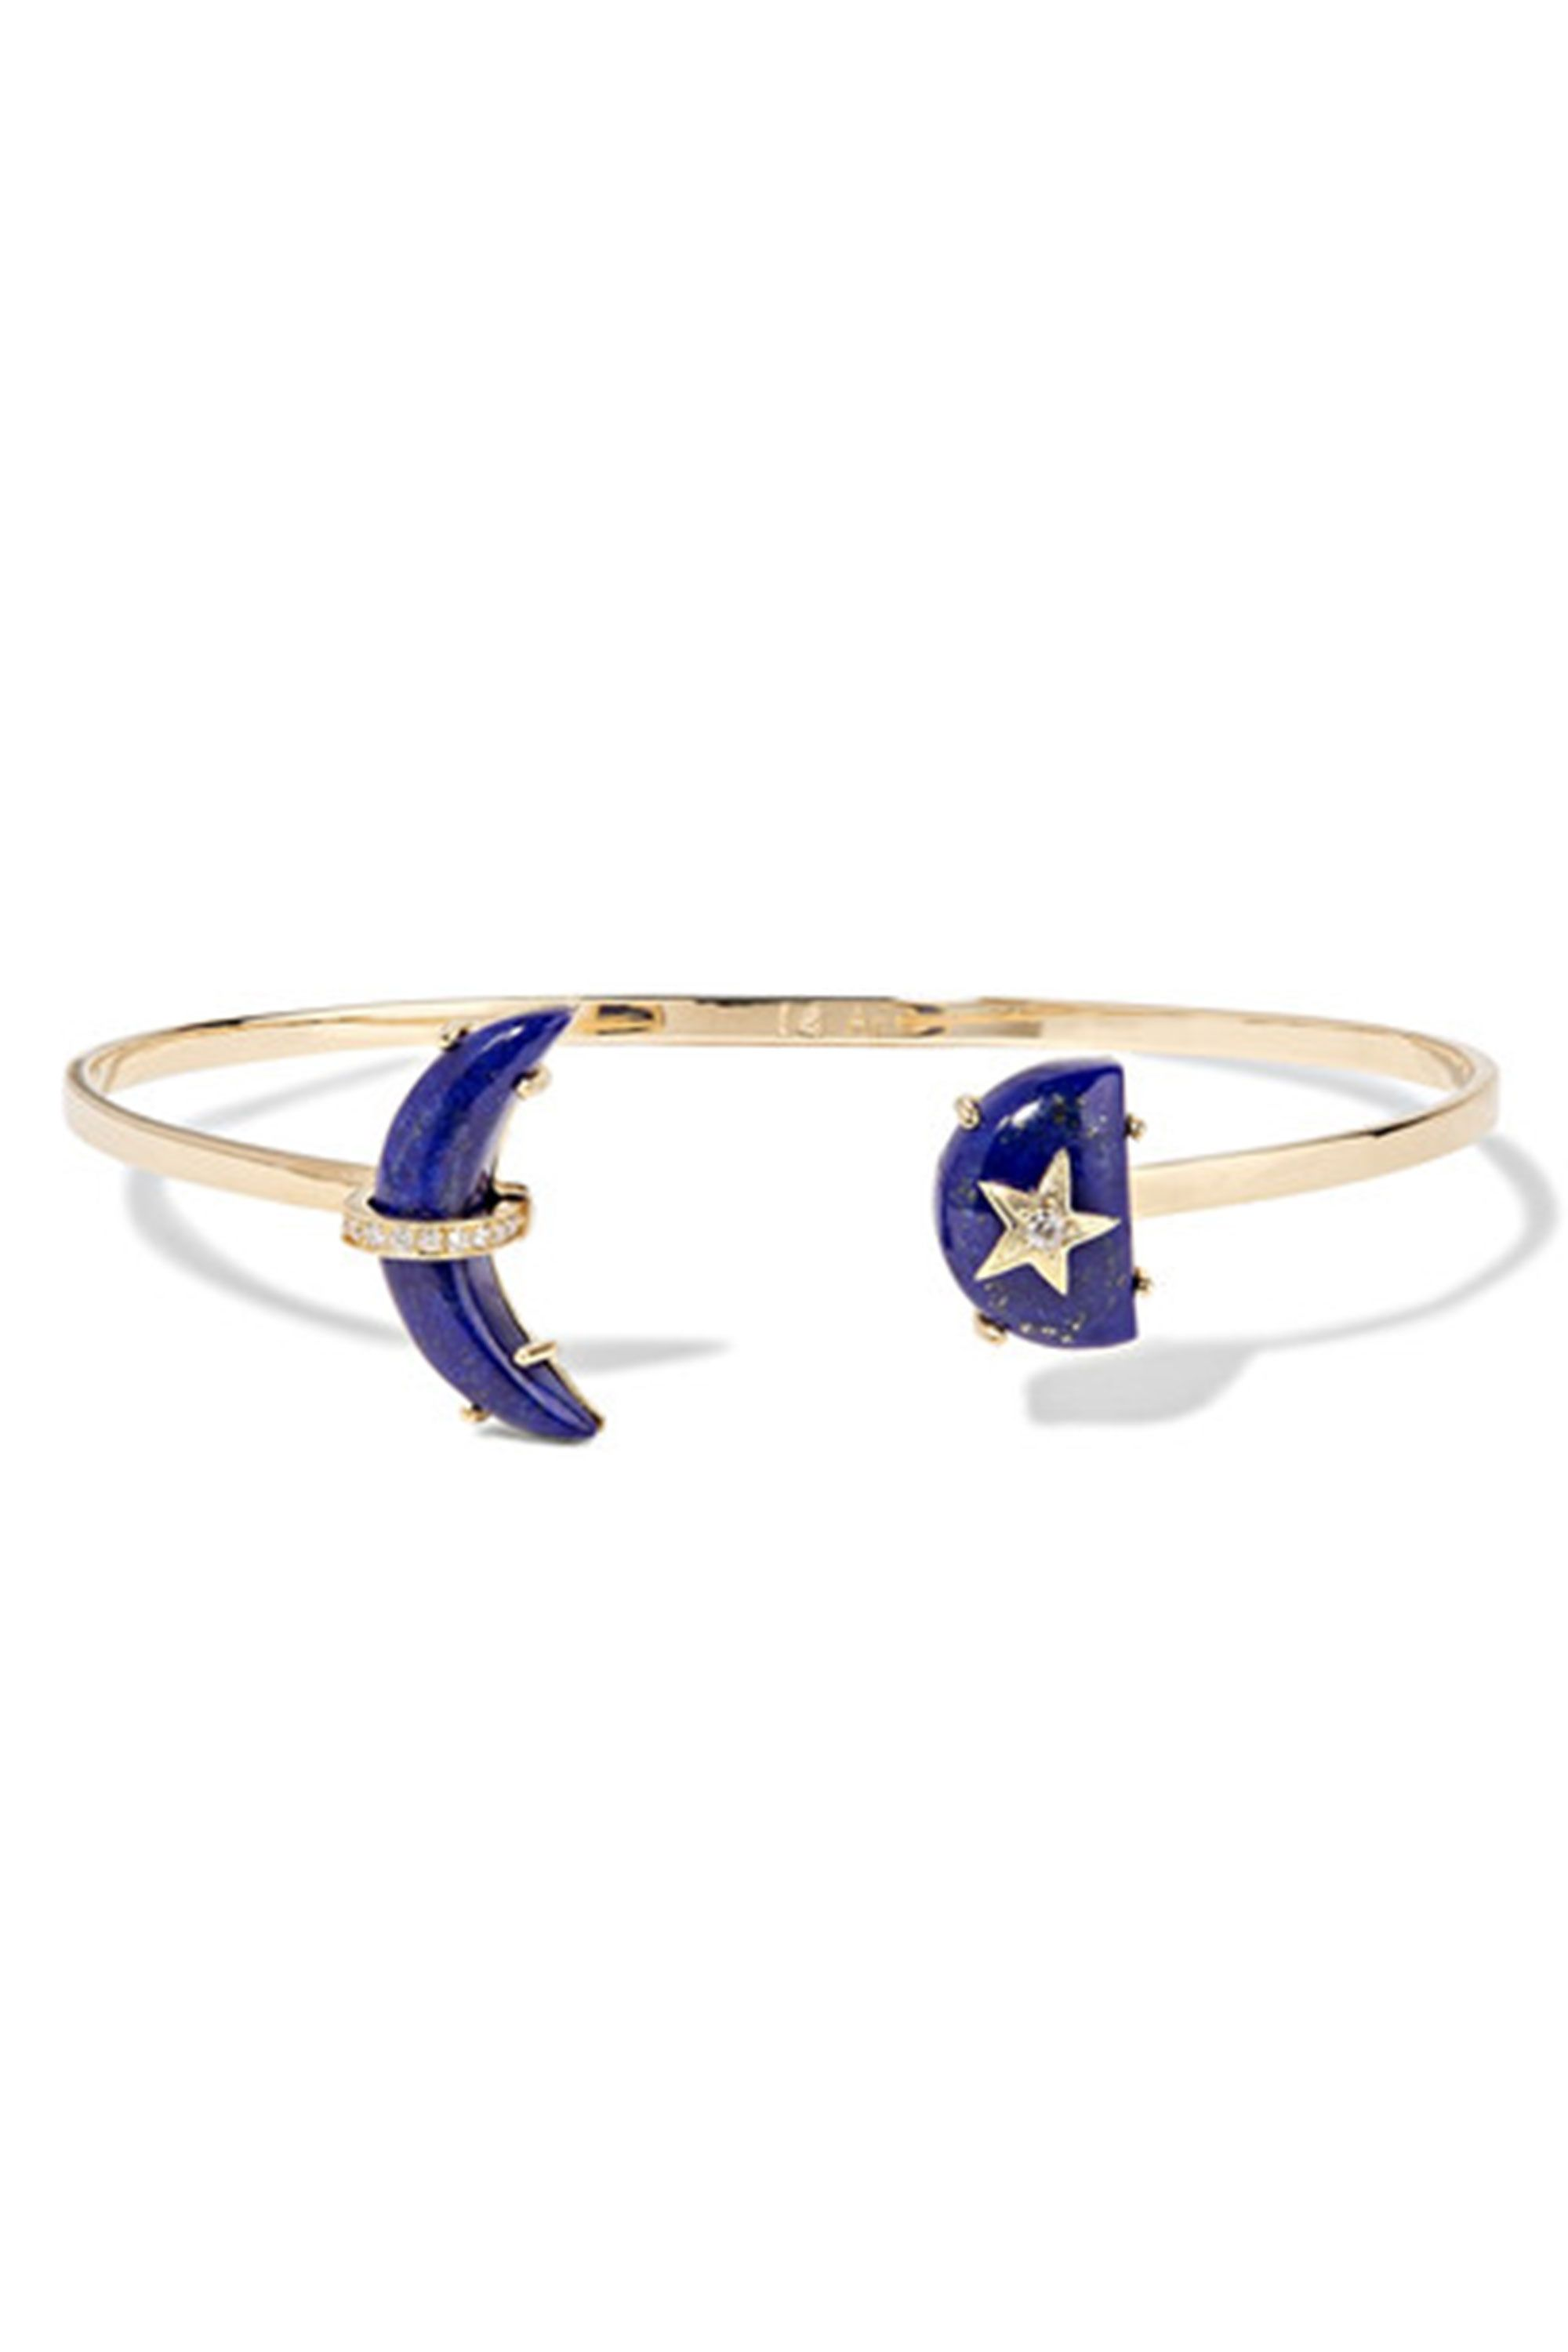 bangle the fashion news bracelets jewellery cartier bangles watches cuffs uk best love of kate spade expensive